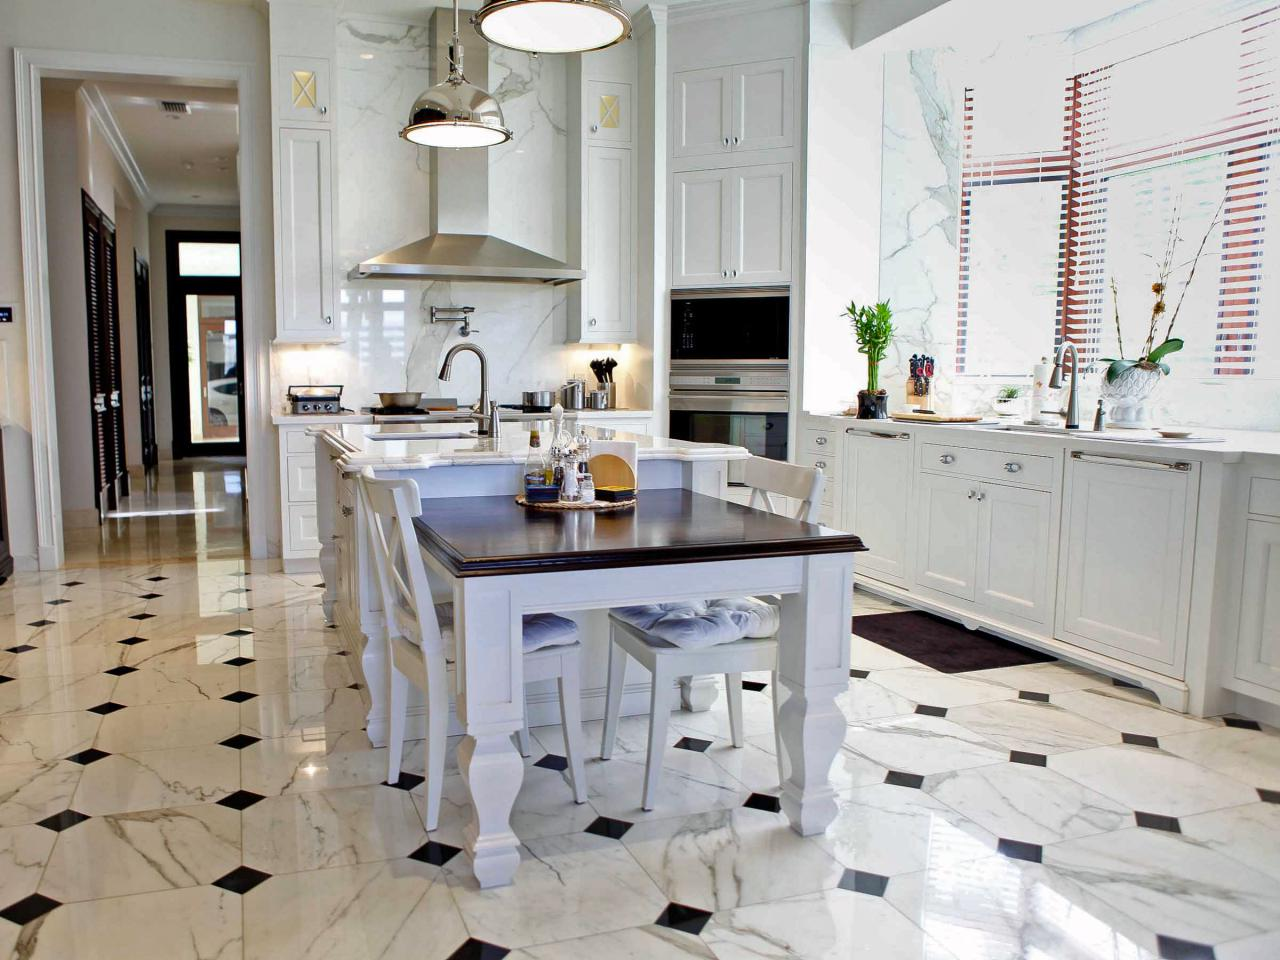 White Marble Kitchen Floors Ceramic Tile Floor In The Kitchen